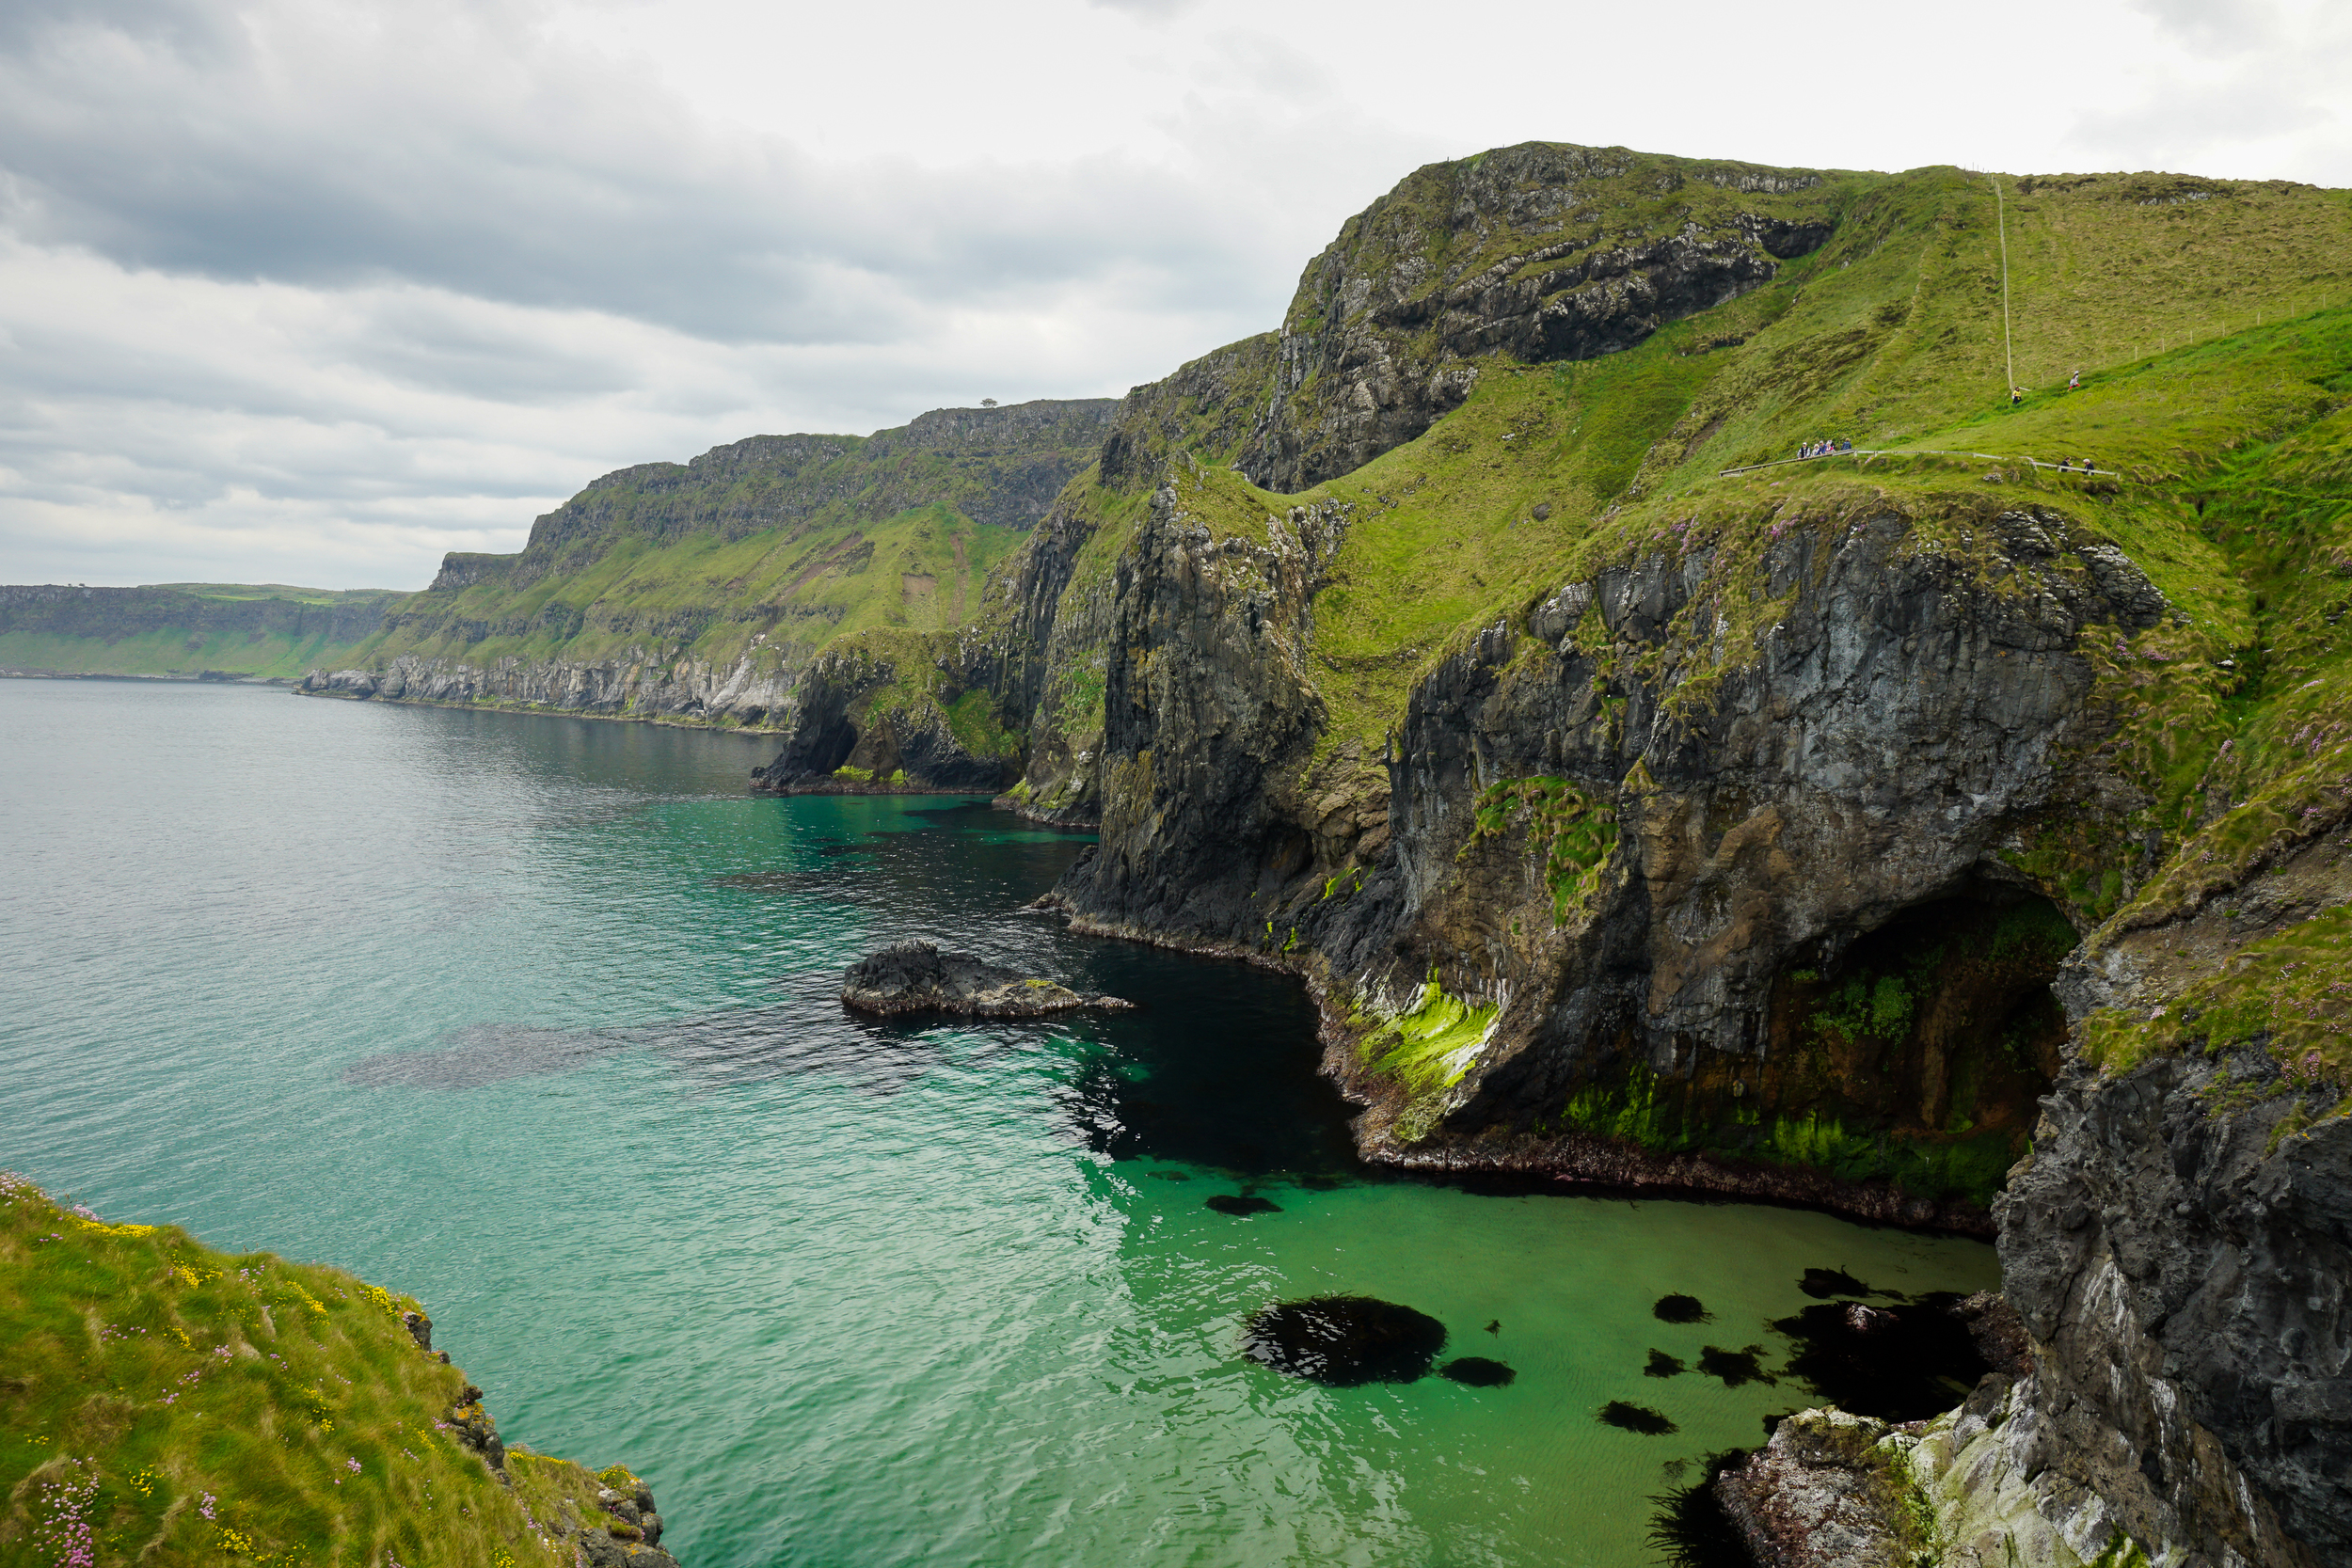 the national parks girl_ireland_sony_irish road trip_carrick a rede_carrick a rede rope bridge.JPG